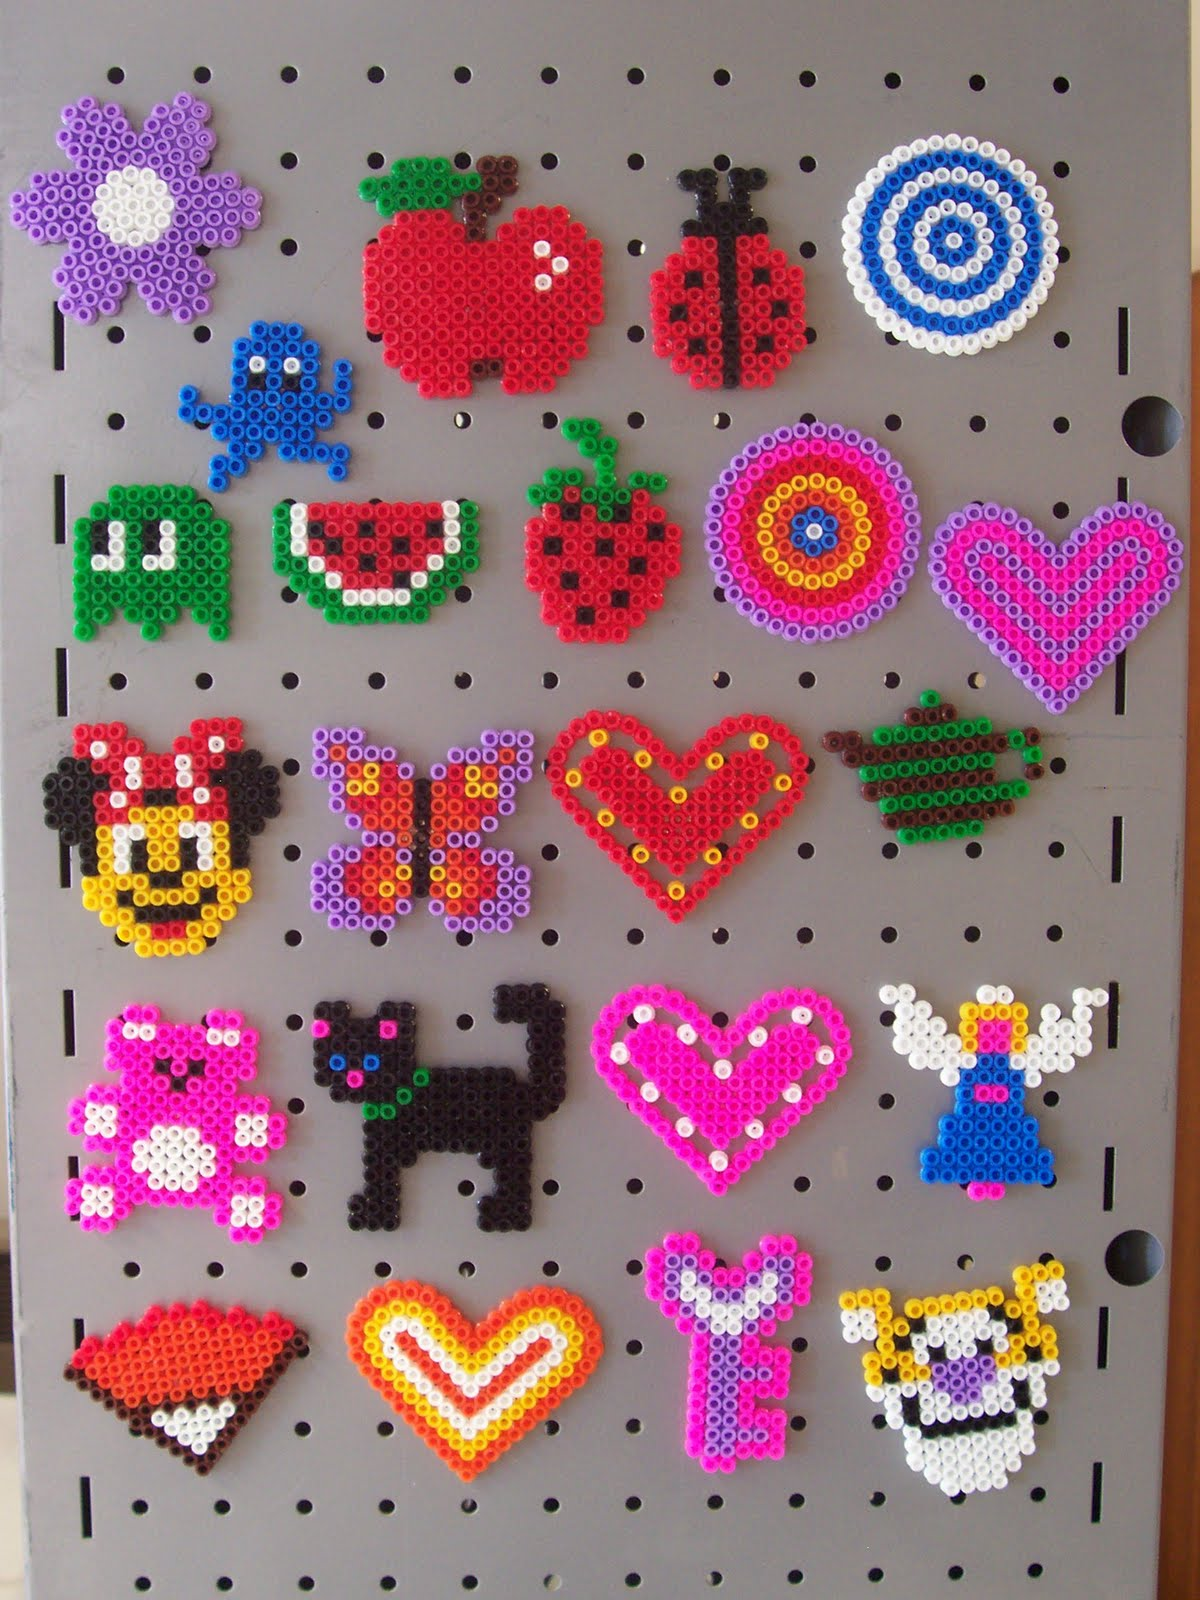 Welcome to Hama Beads - Authorised Hama Beads Mail Order